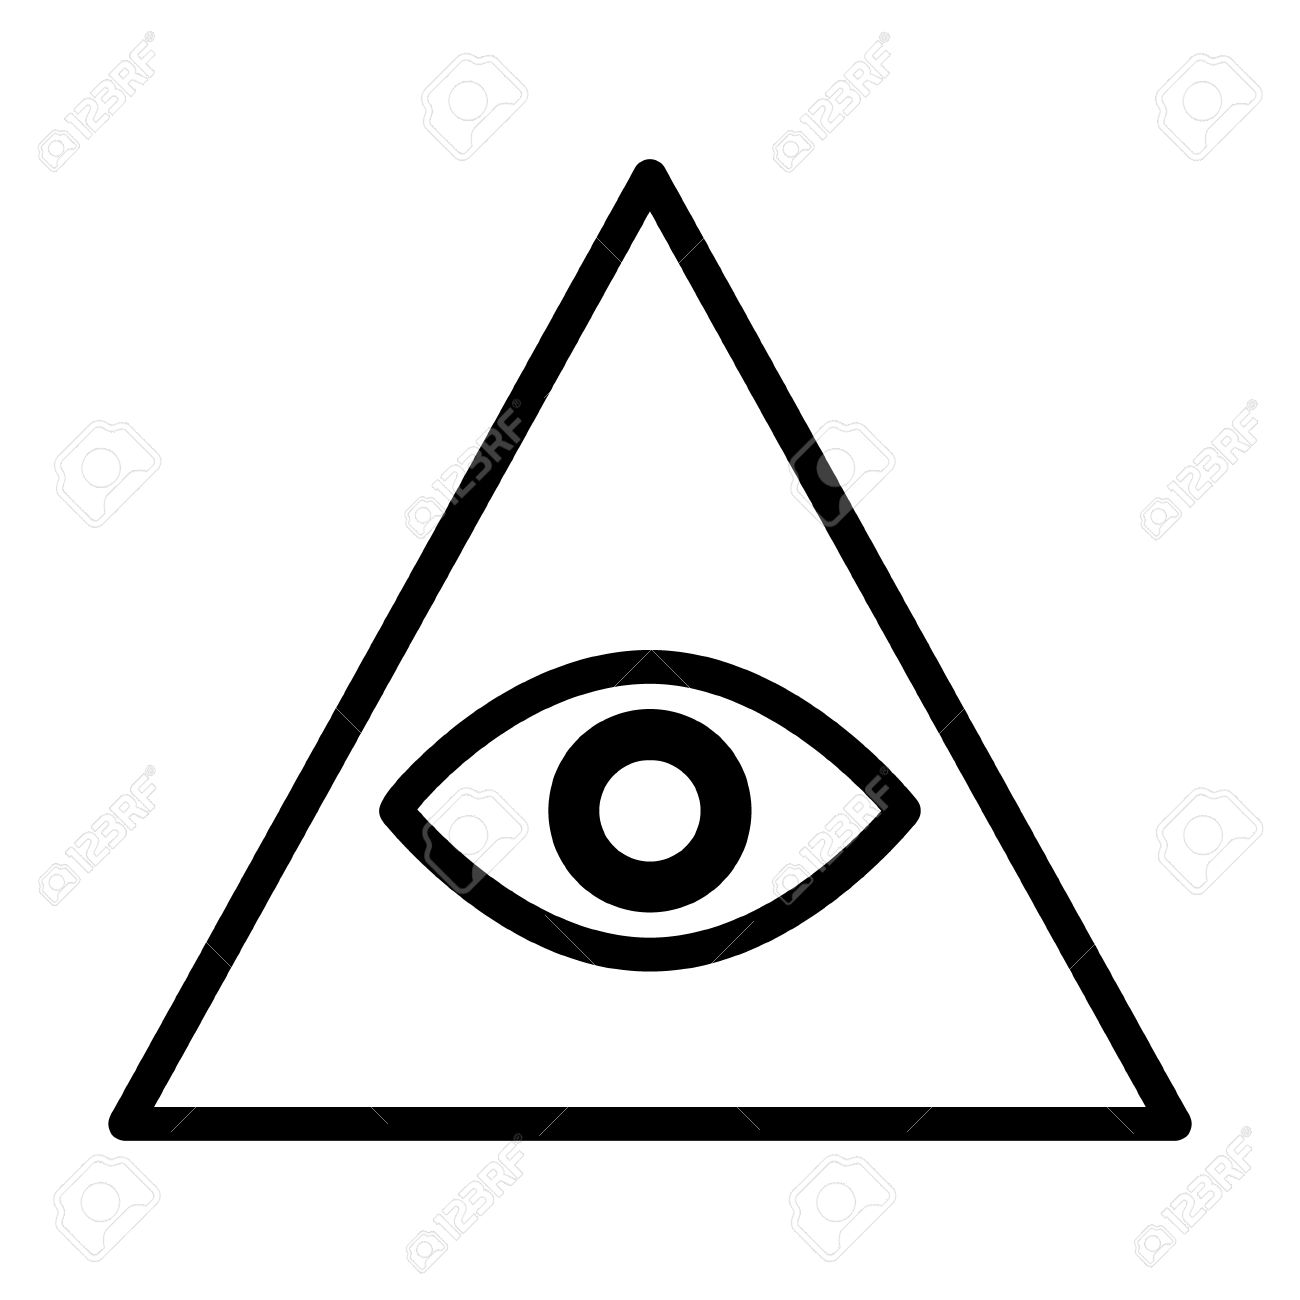 eye of providence or all seeing eye of god line art icon for rh 123rf com Jesus Vector eye of providence vector free